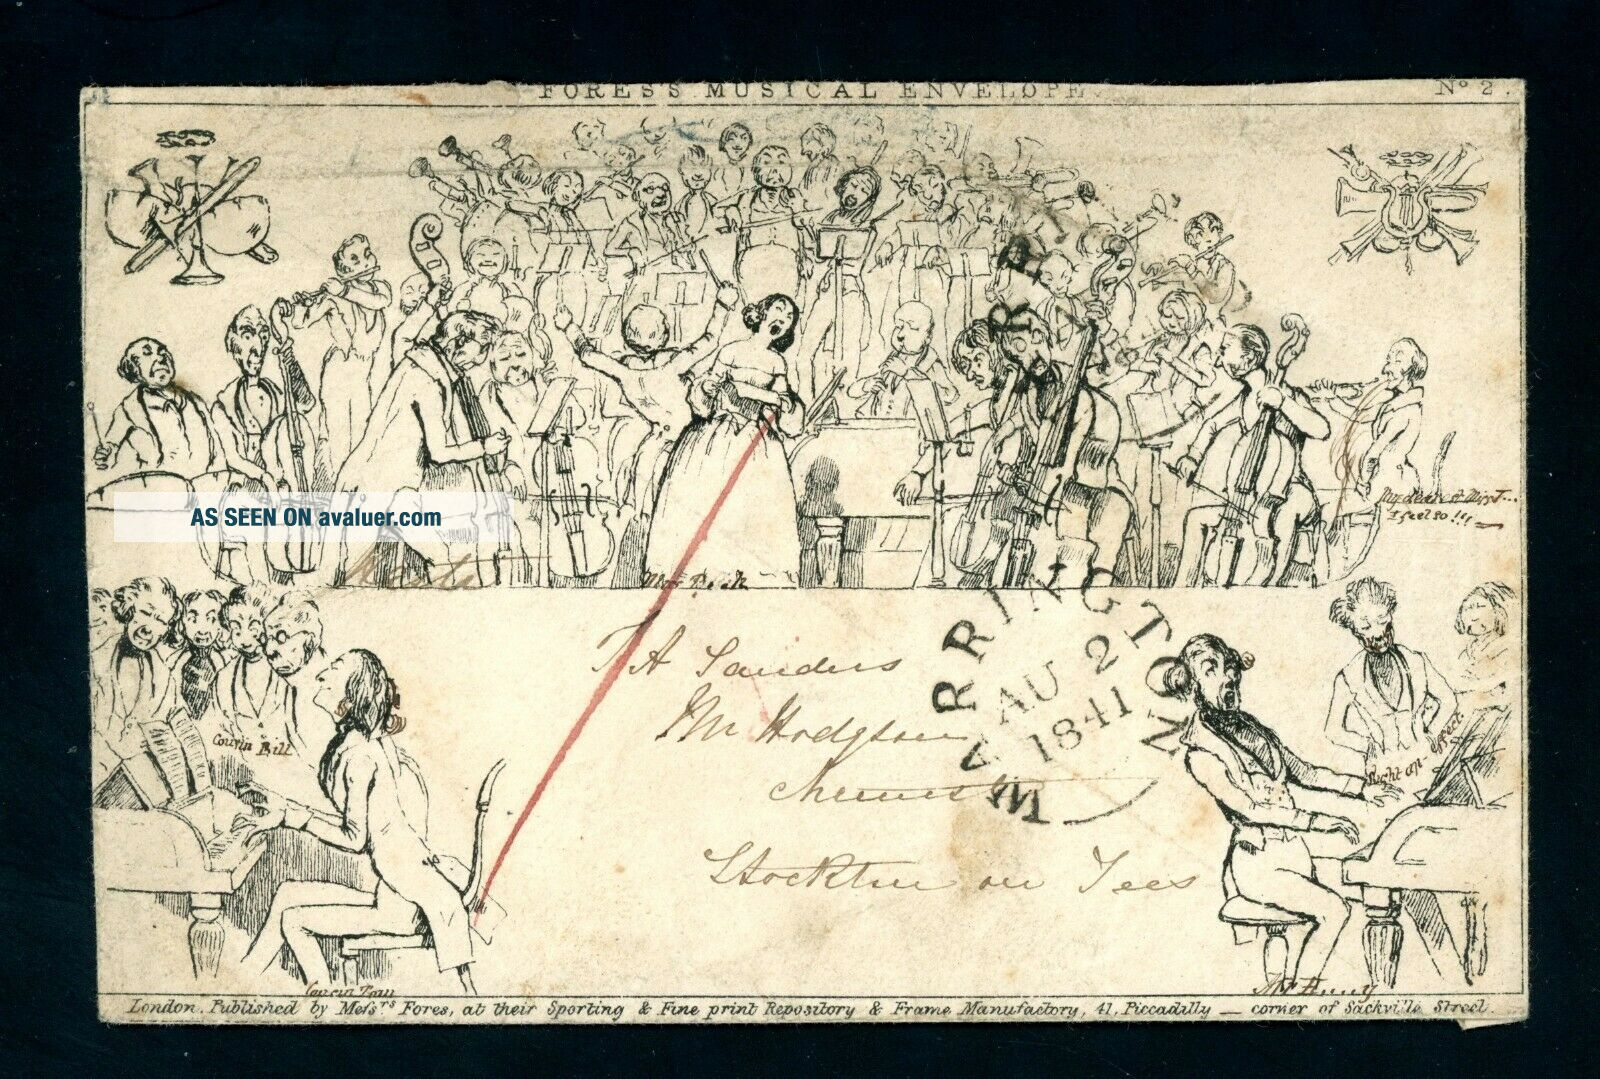 1841 Fores ' s Musical Caricature Warrington to Stockton on Tees,  Rare Item (J160)